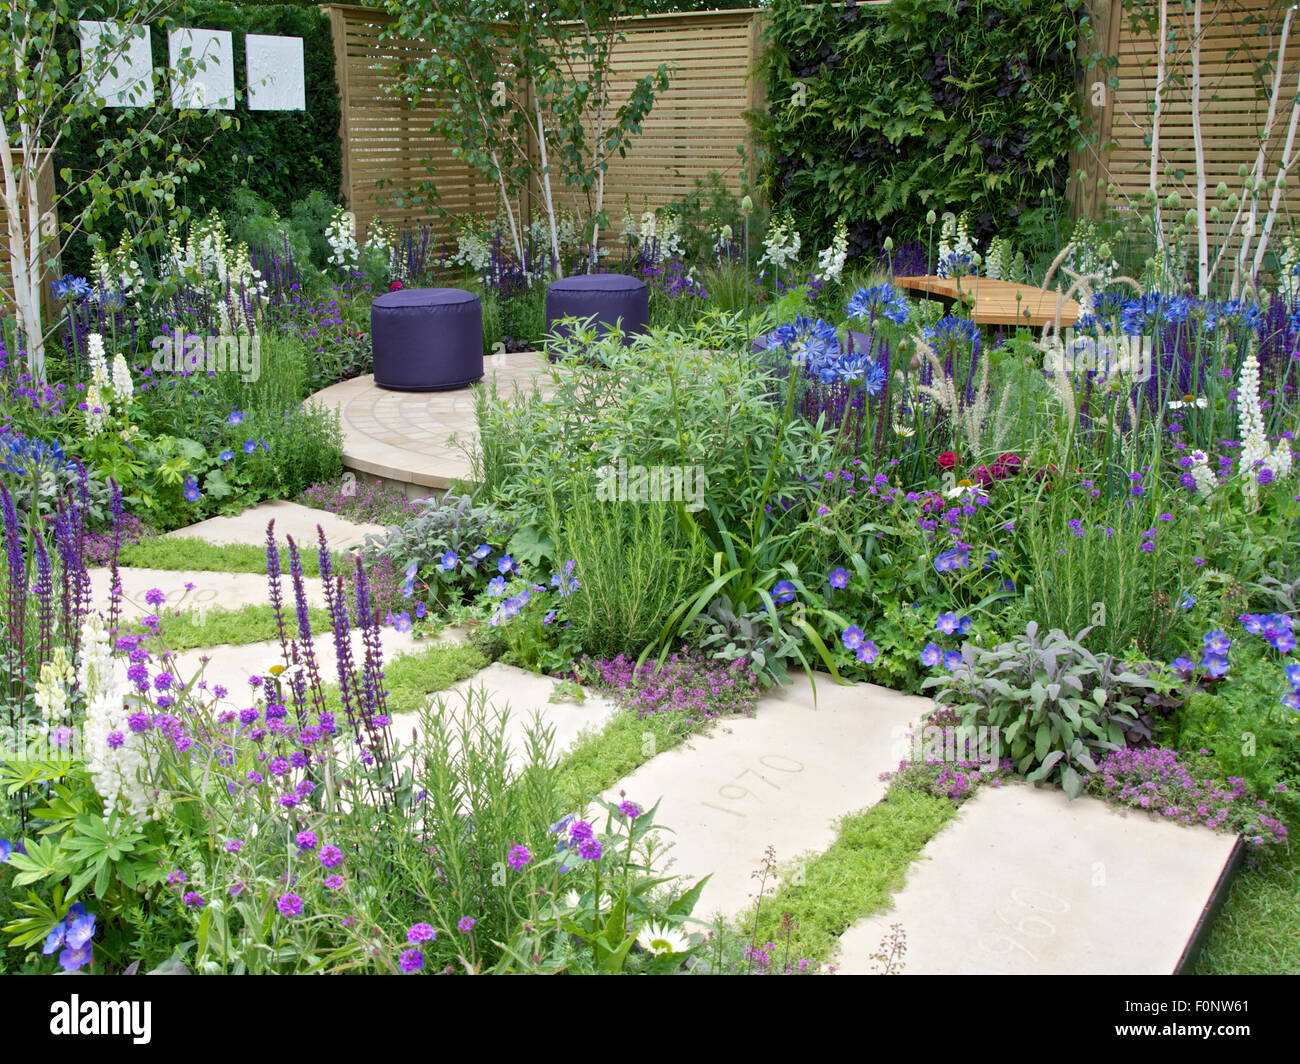 The wellbeing of women garden at rhs hampton court palace flower show stock photo 86532601 alamy - Hampton court flower show ...